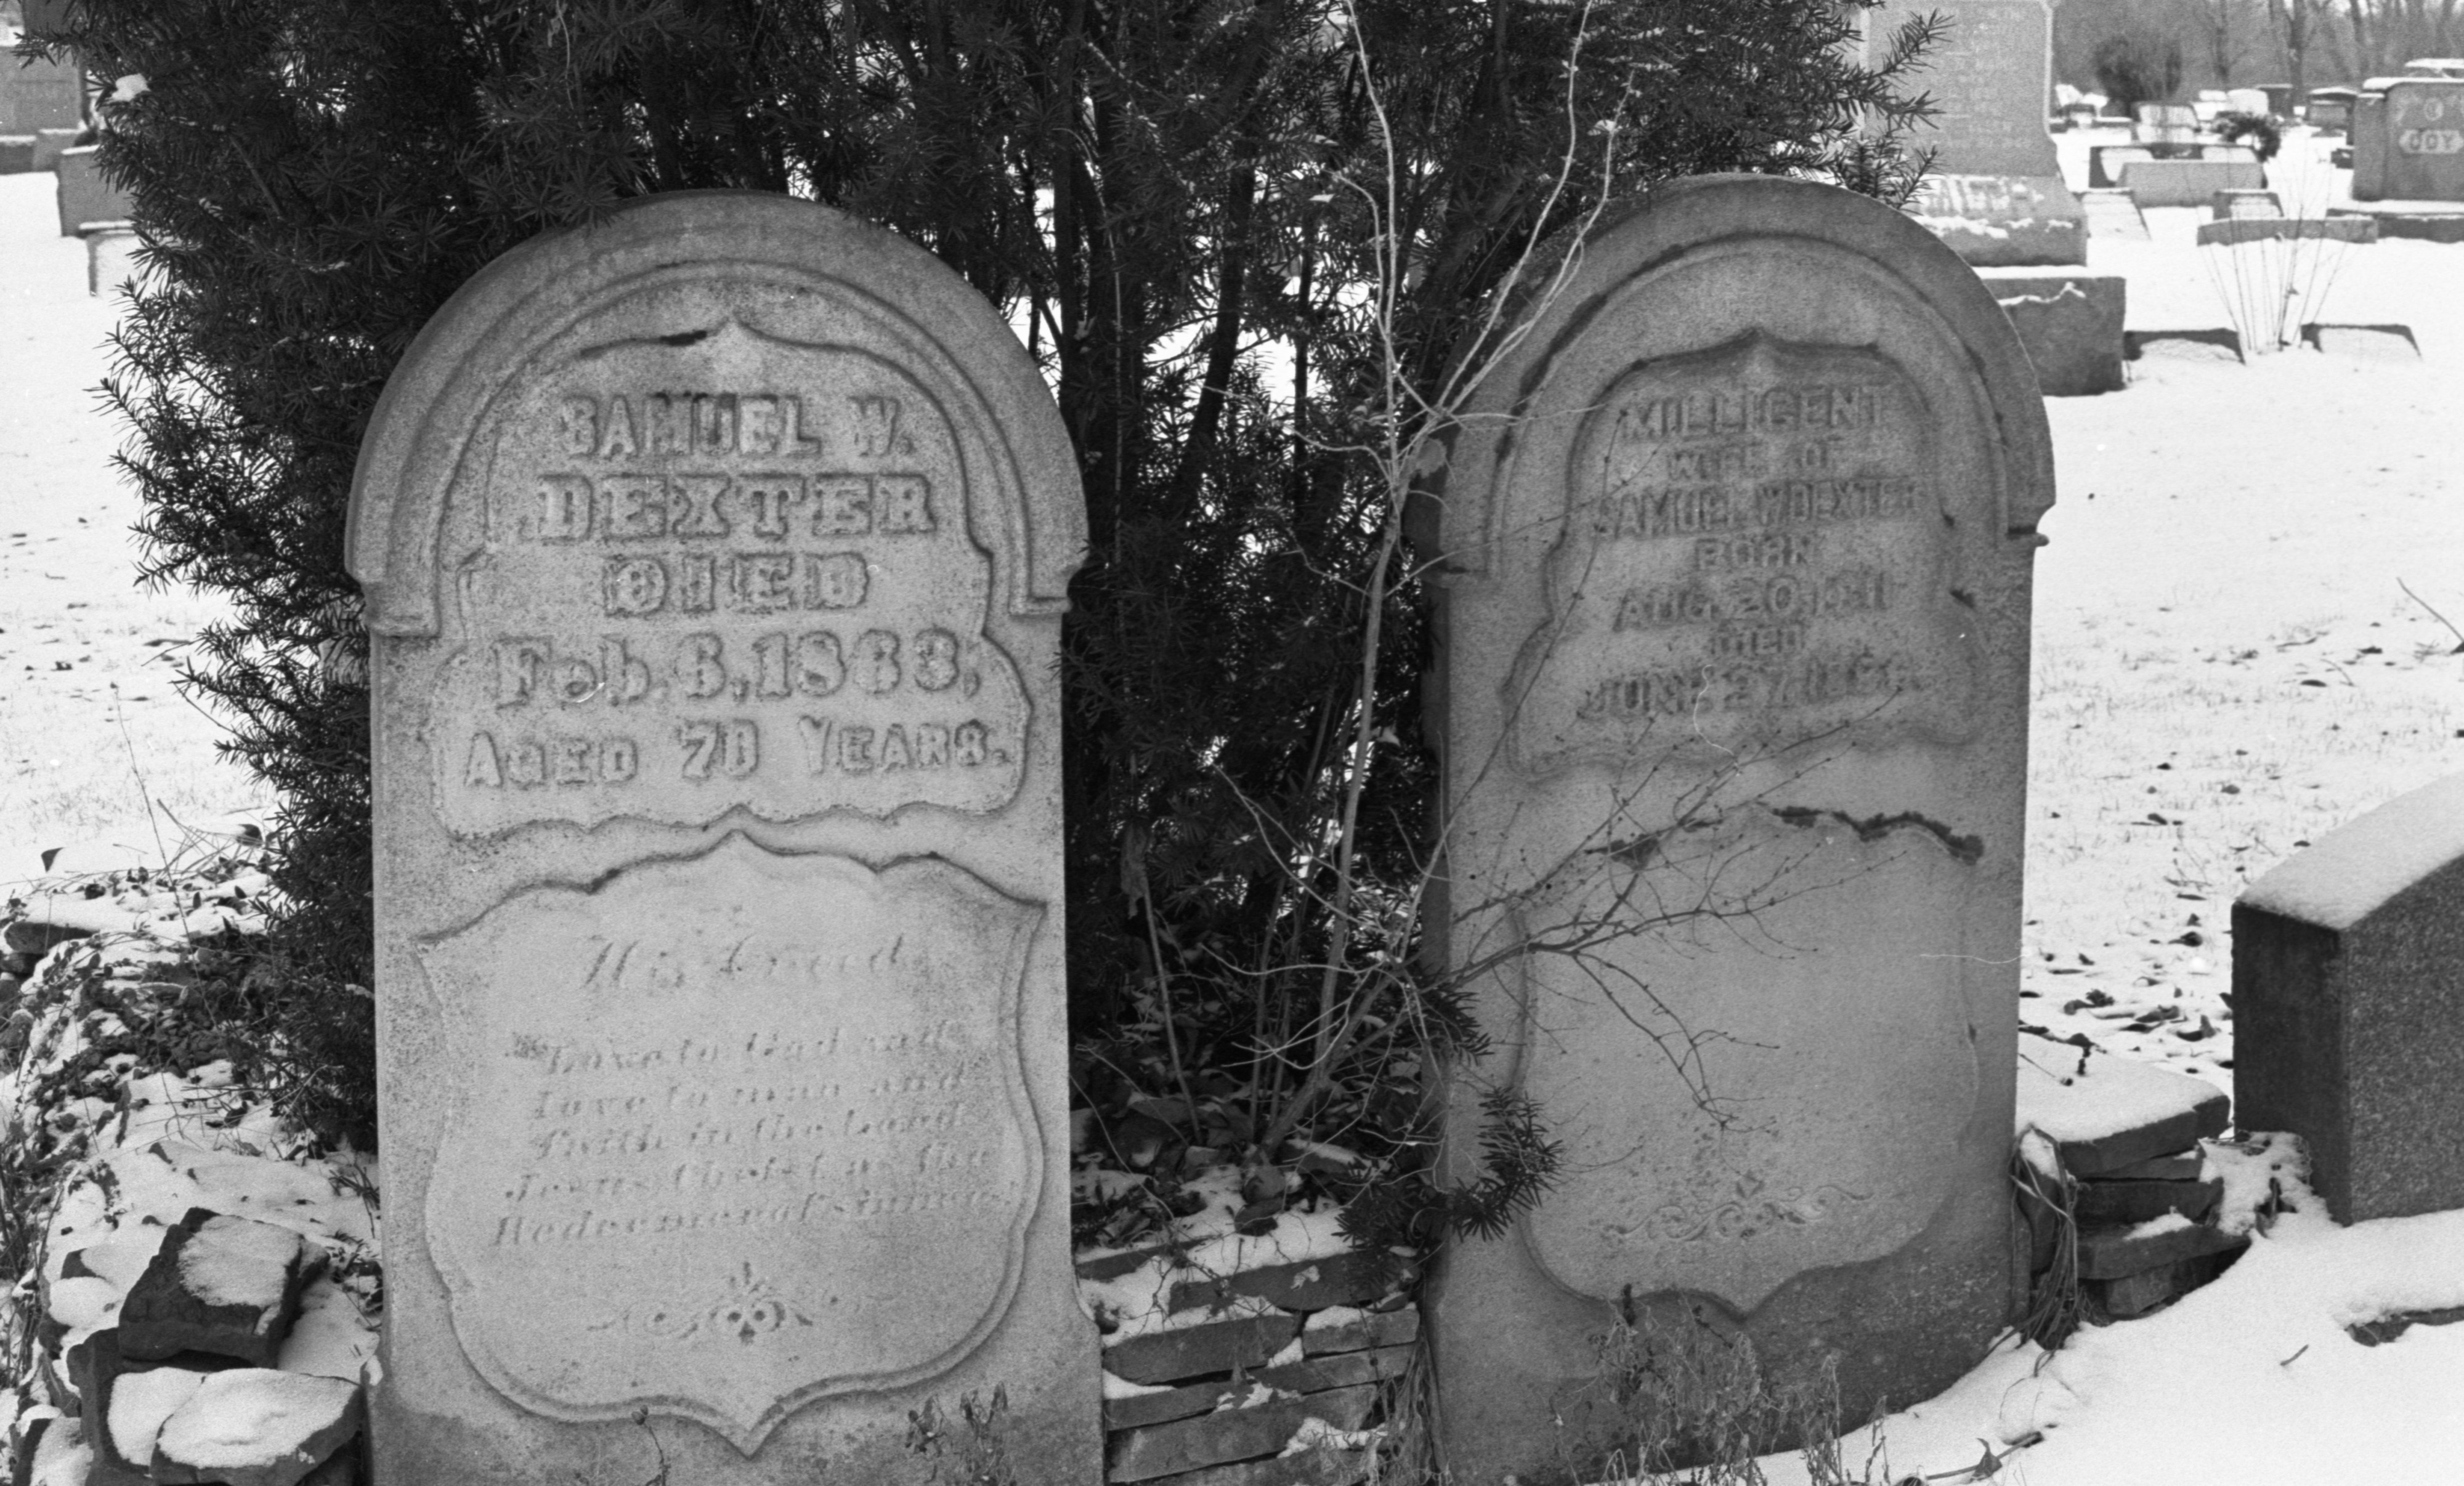 The Graves Of Samuel W. Dexter, Founder Of The Town, & His Wife Millicent, At Forest Lawn Cemetery, March 1980 image